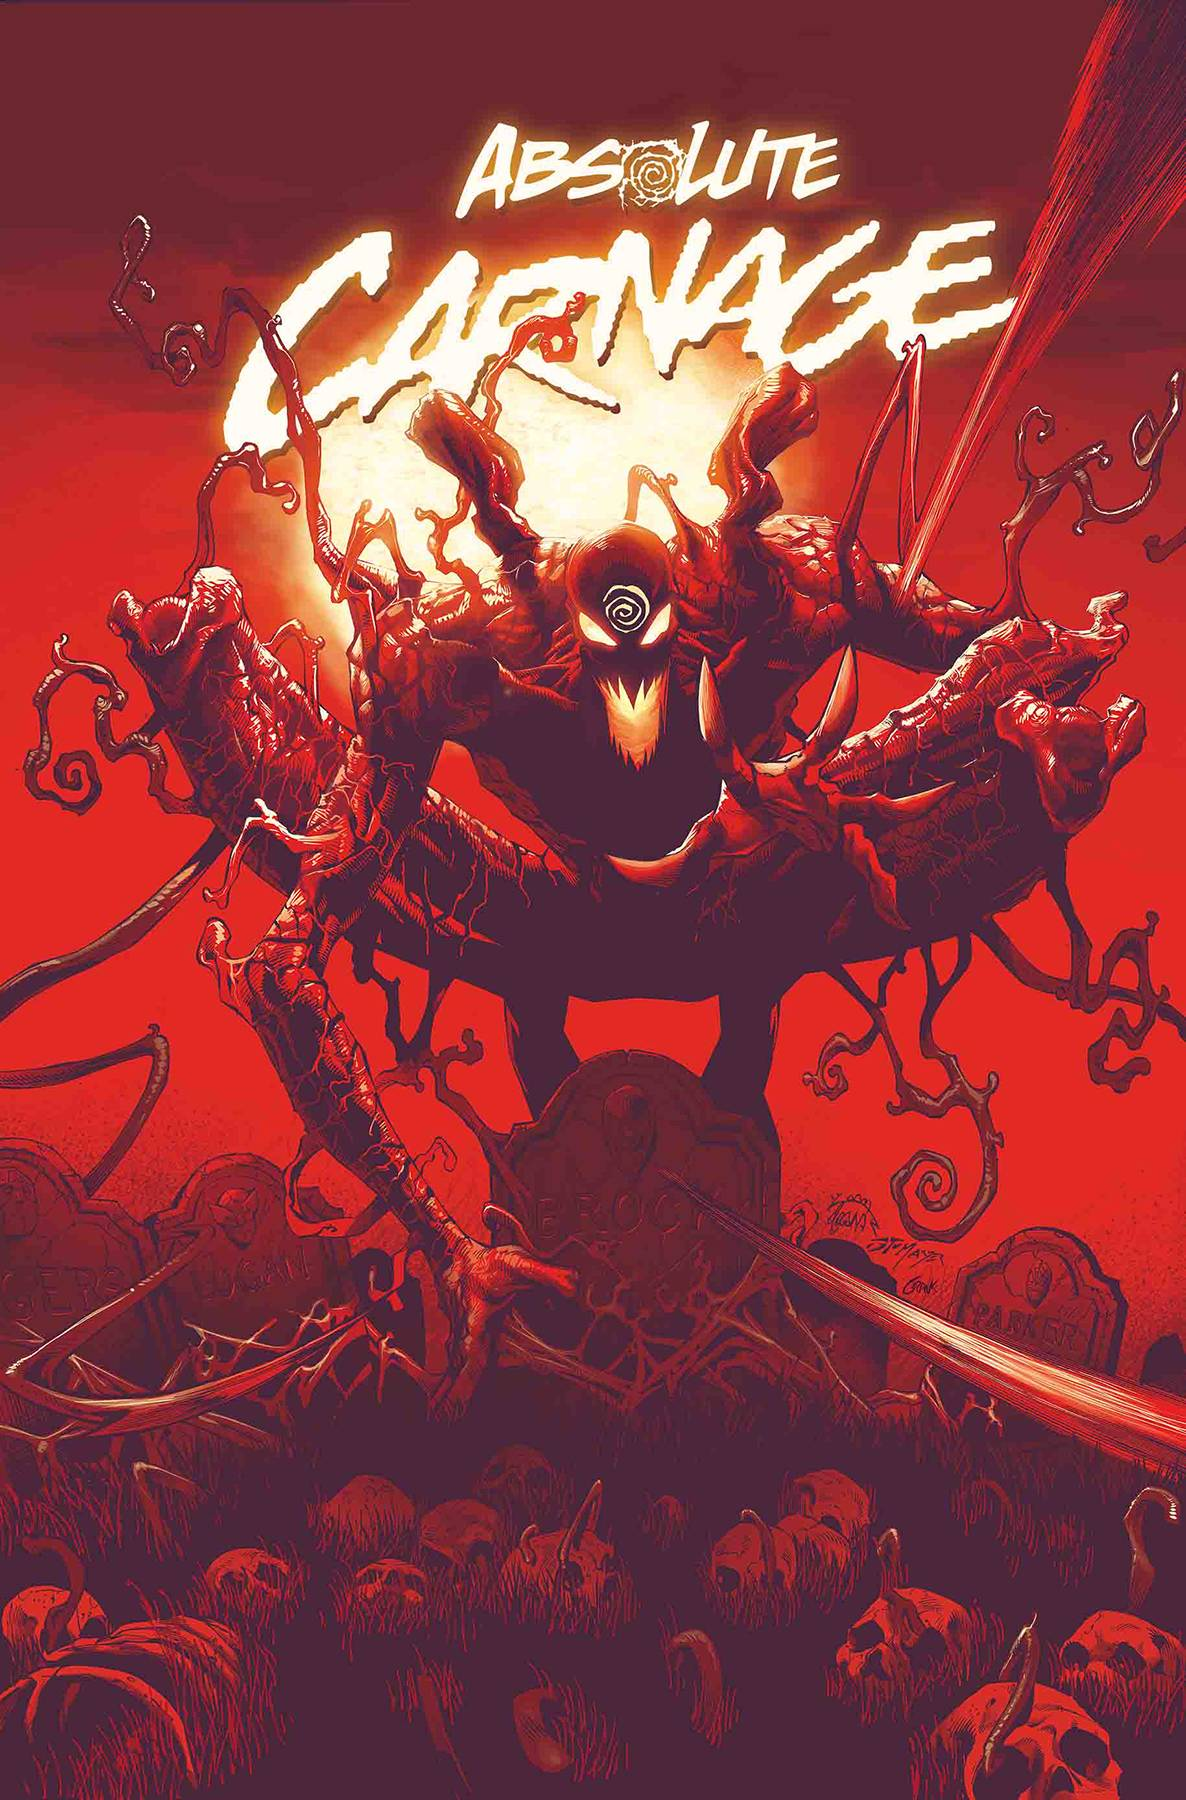 08/07/2019 ABSOLUTE CARNAGE #1 (OF 4) AC